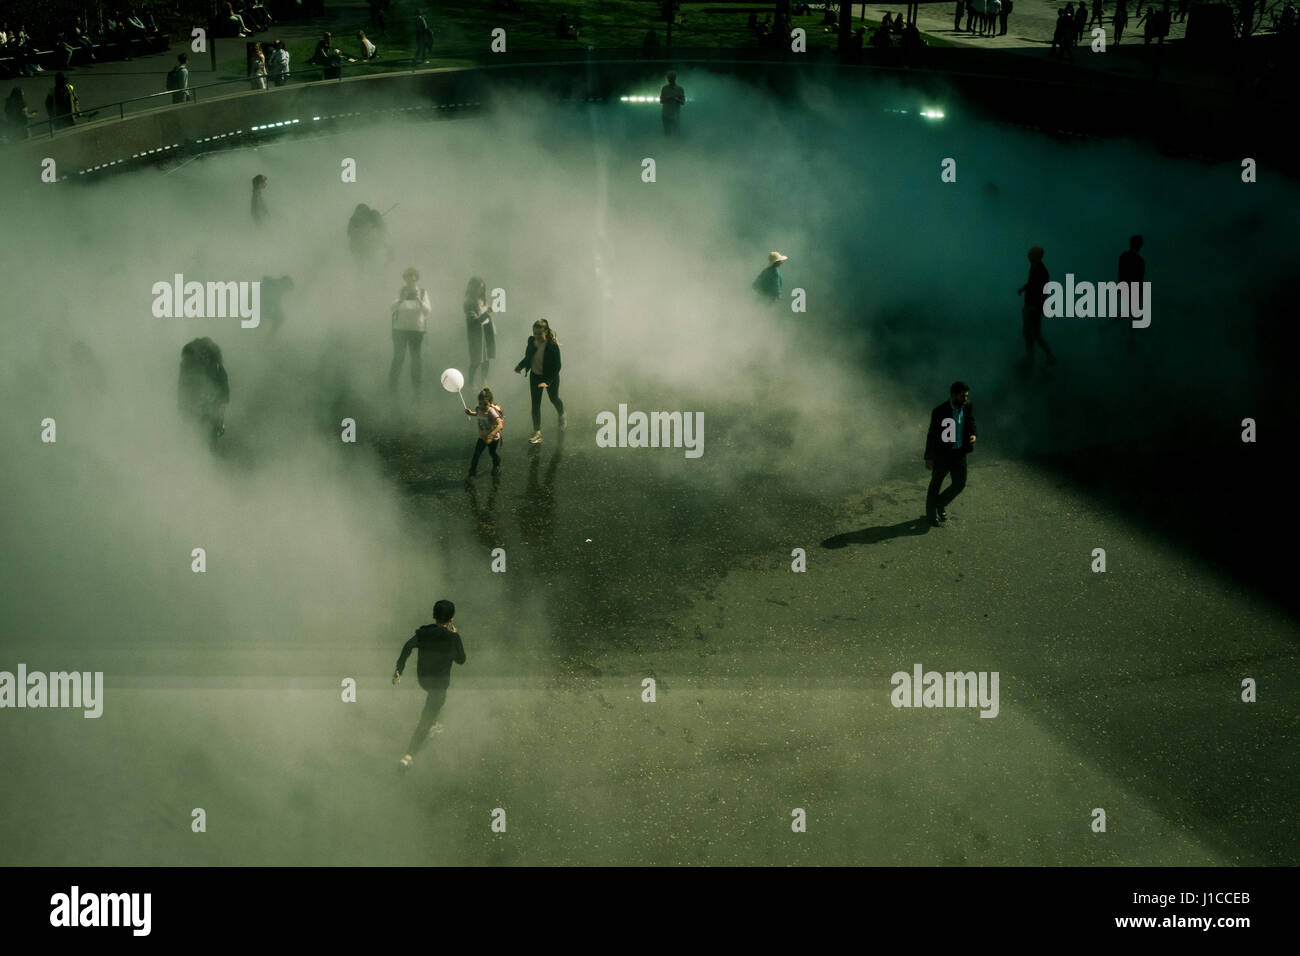 Fujiko Nakaya immersive fog sculpture at Tate Modern, London Stock Photo